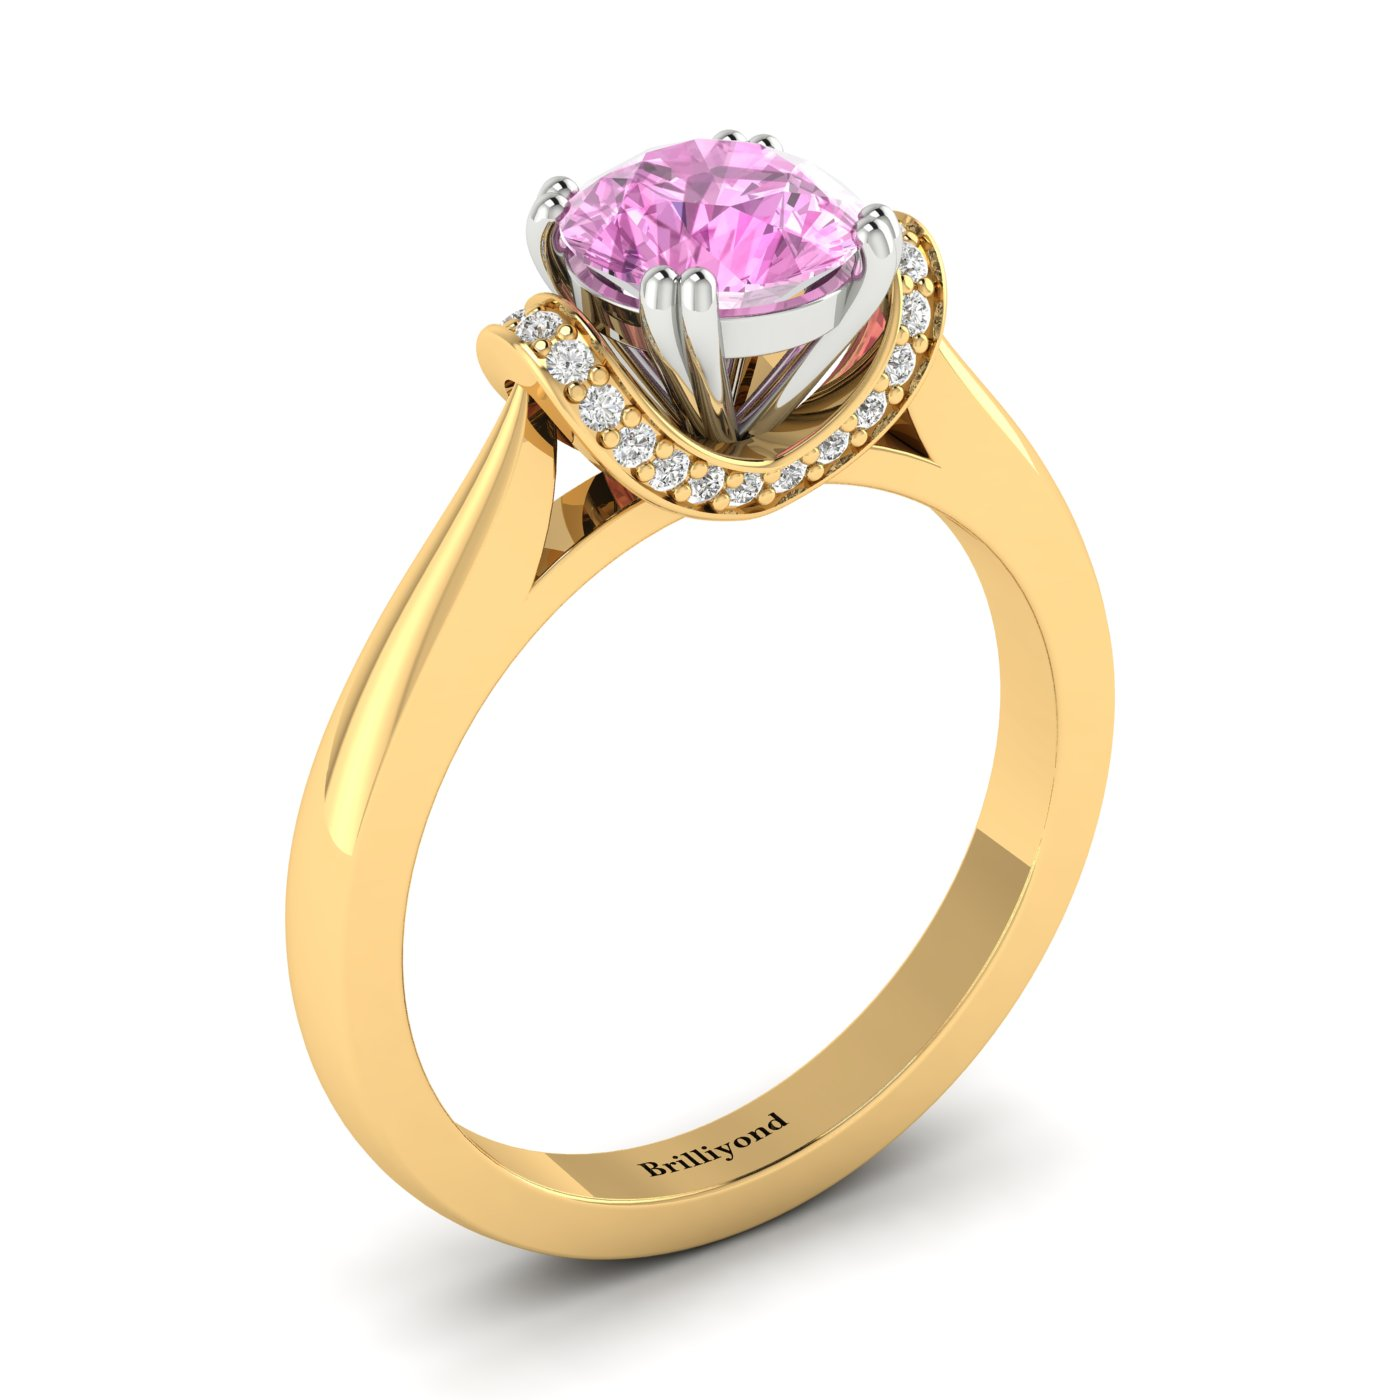 Side angle of Passiflora two tone gold engagement ring with pink Ceylon sapphire